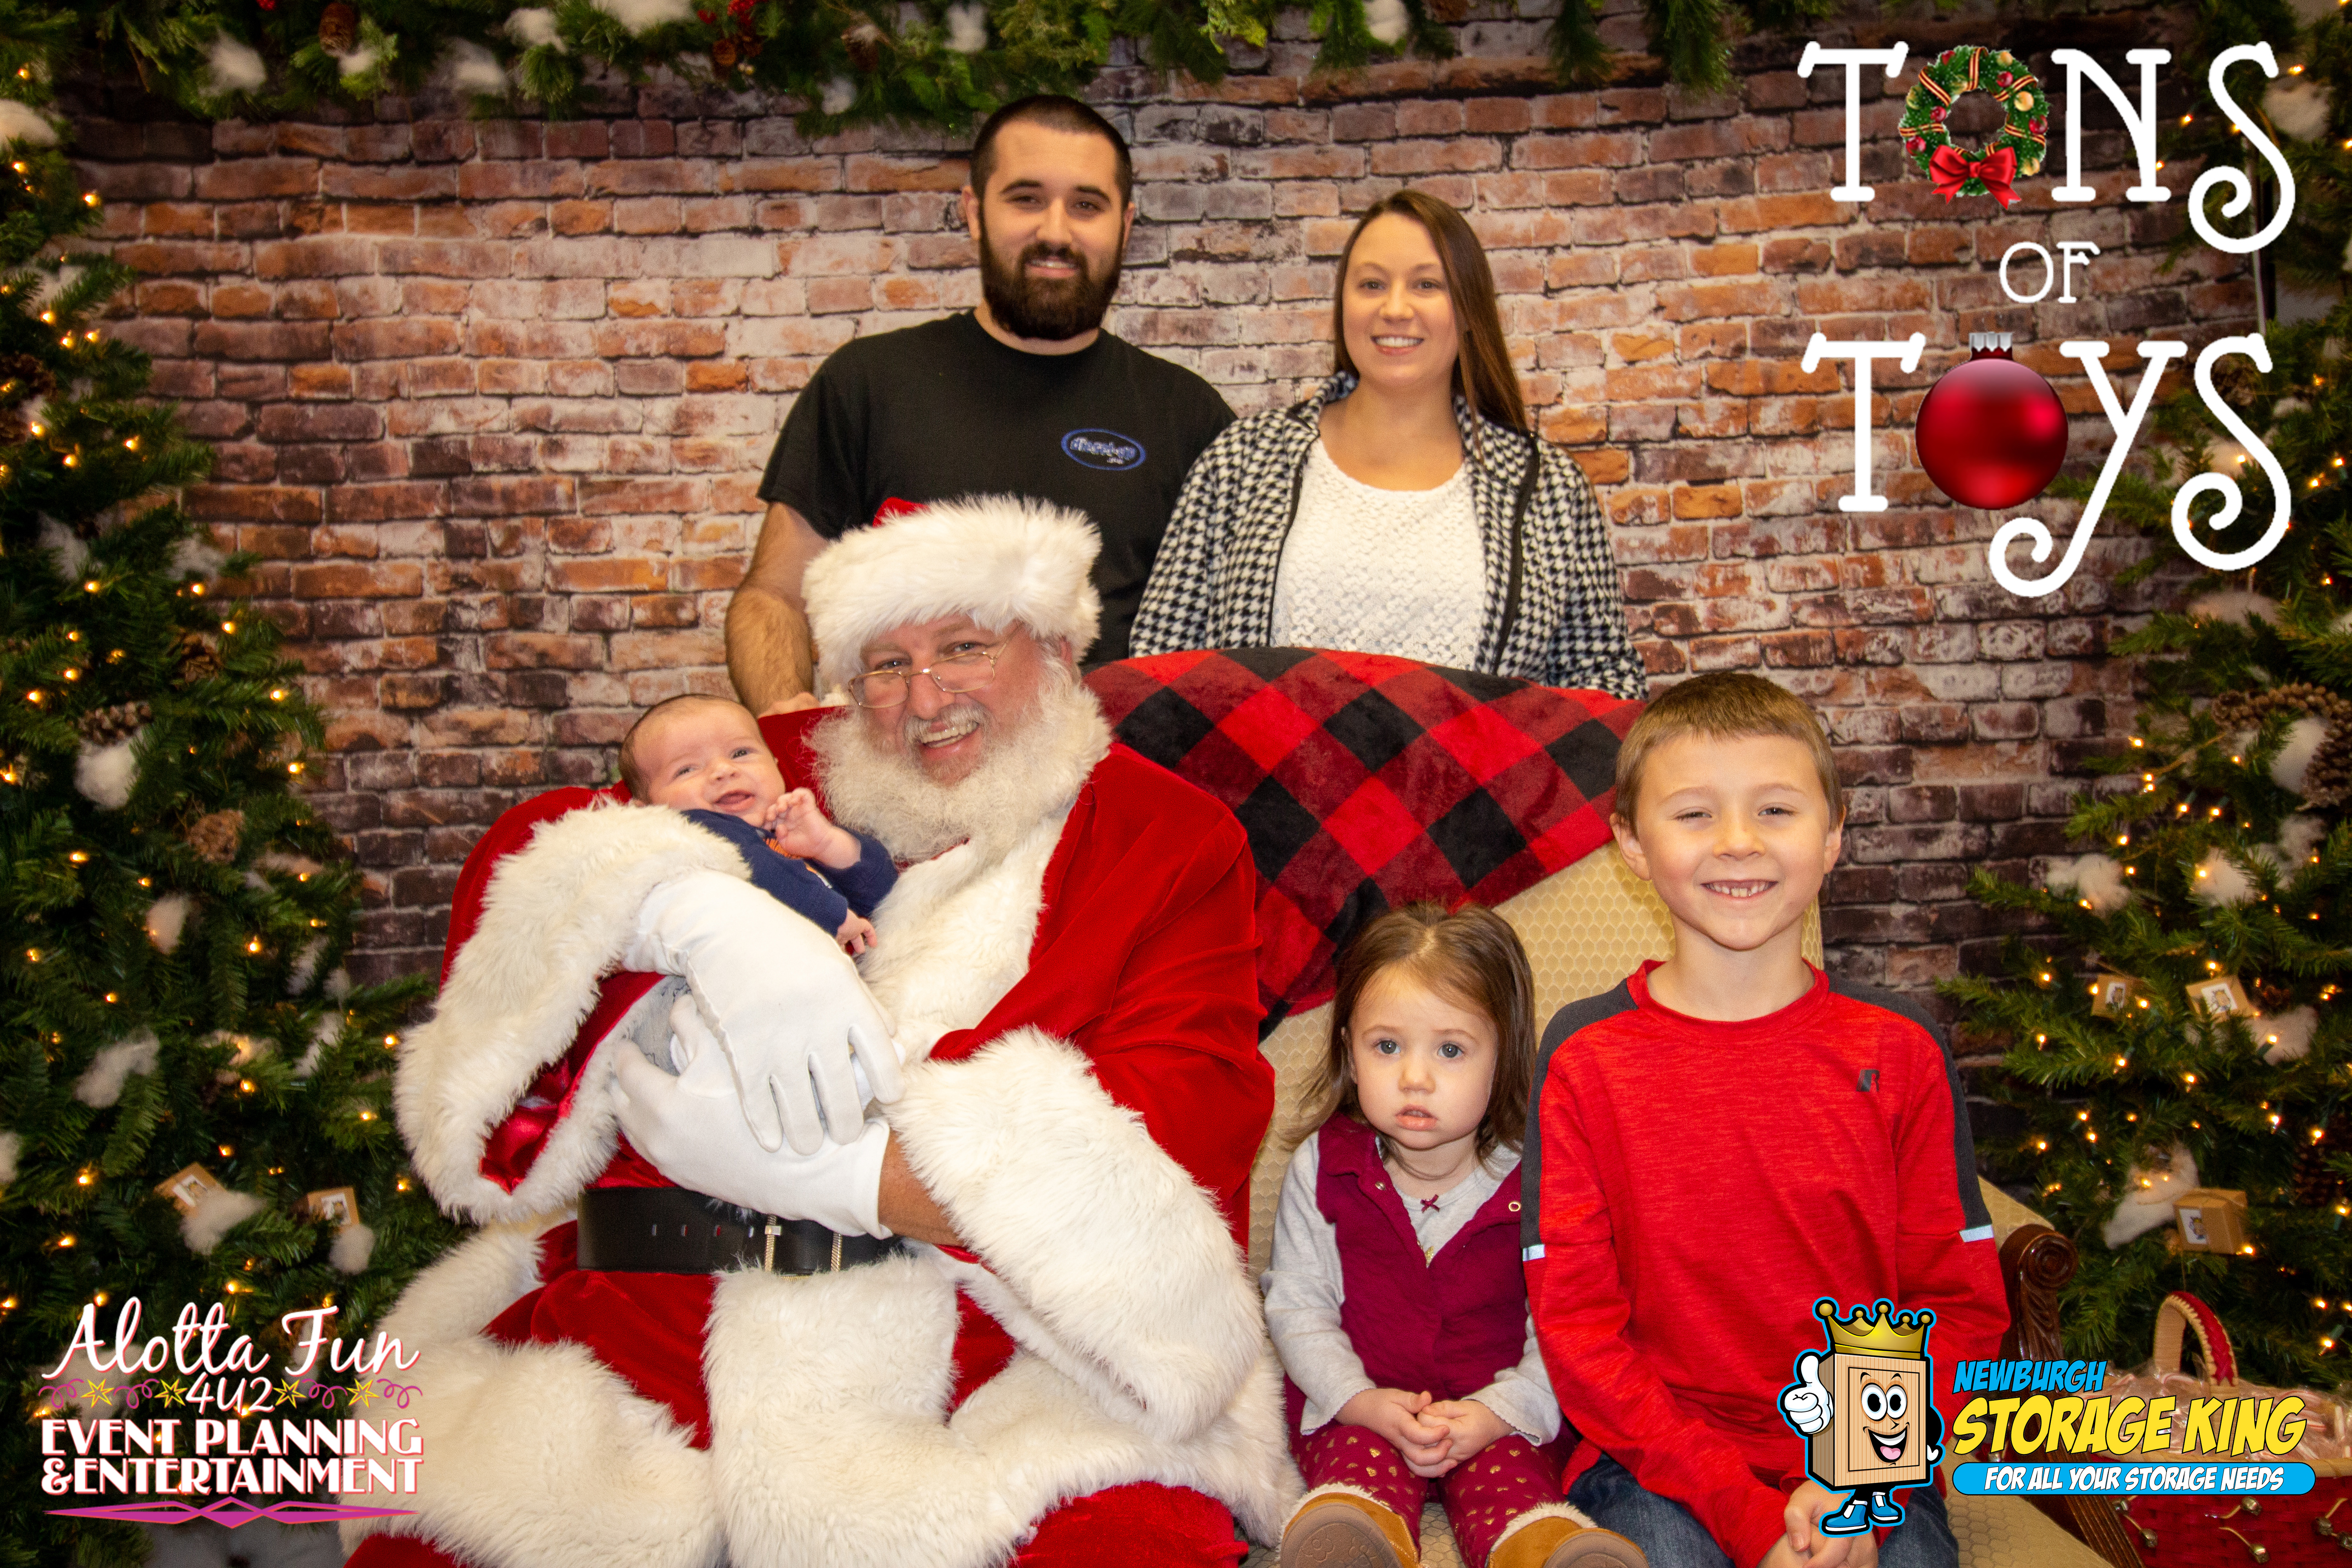 family posing with santa, two parents in background, two children sit next to Santa who holds a baby